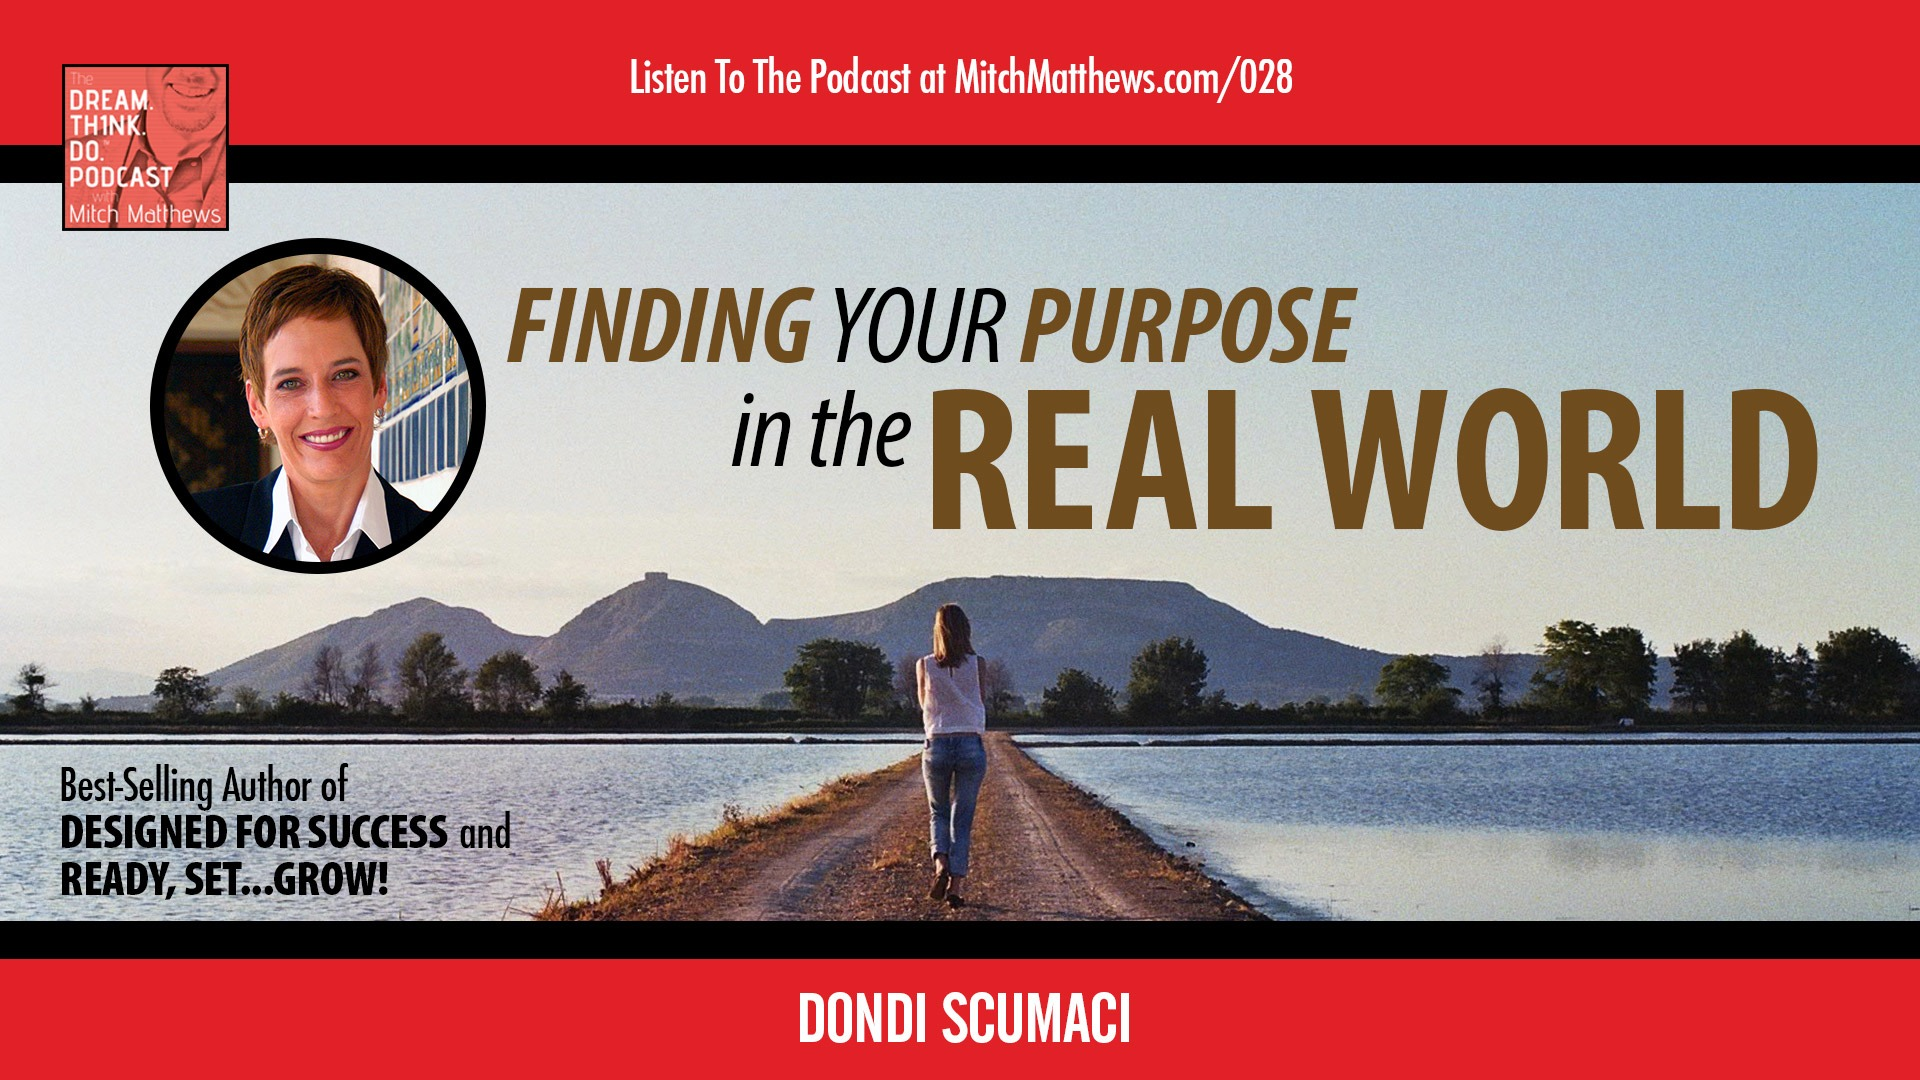 Dondi Scumaci | Finding Your Purpose in the Real World